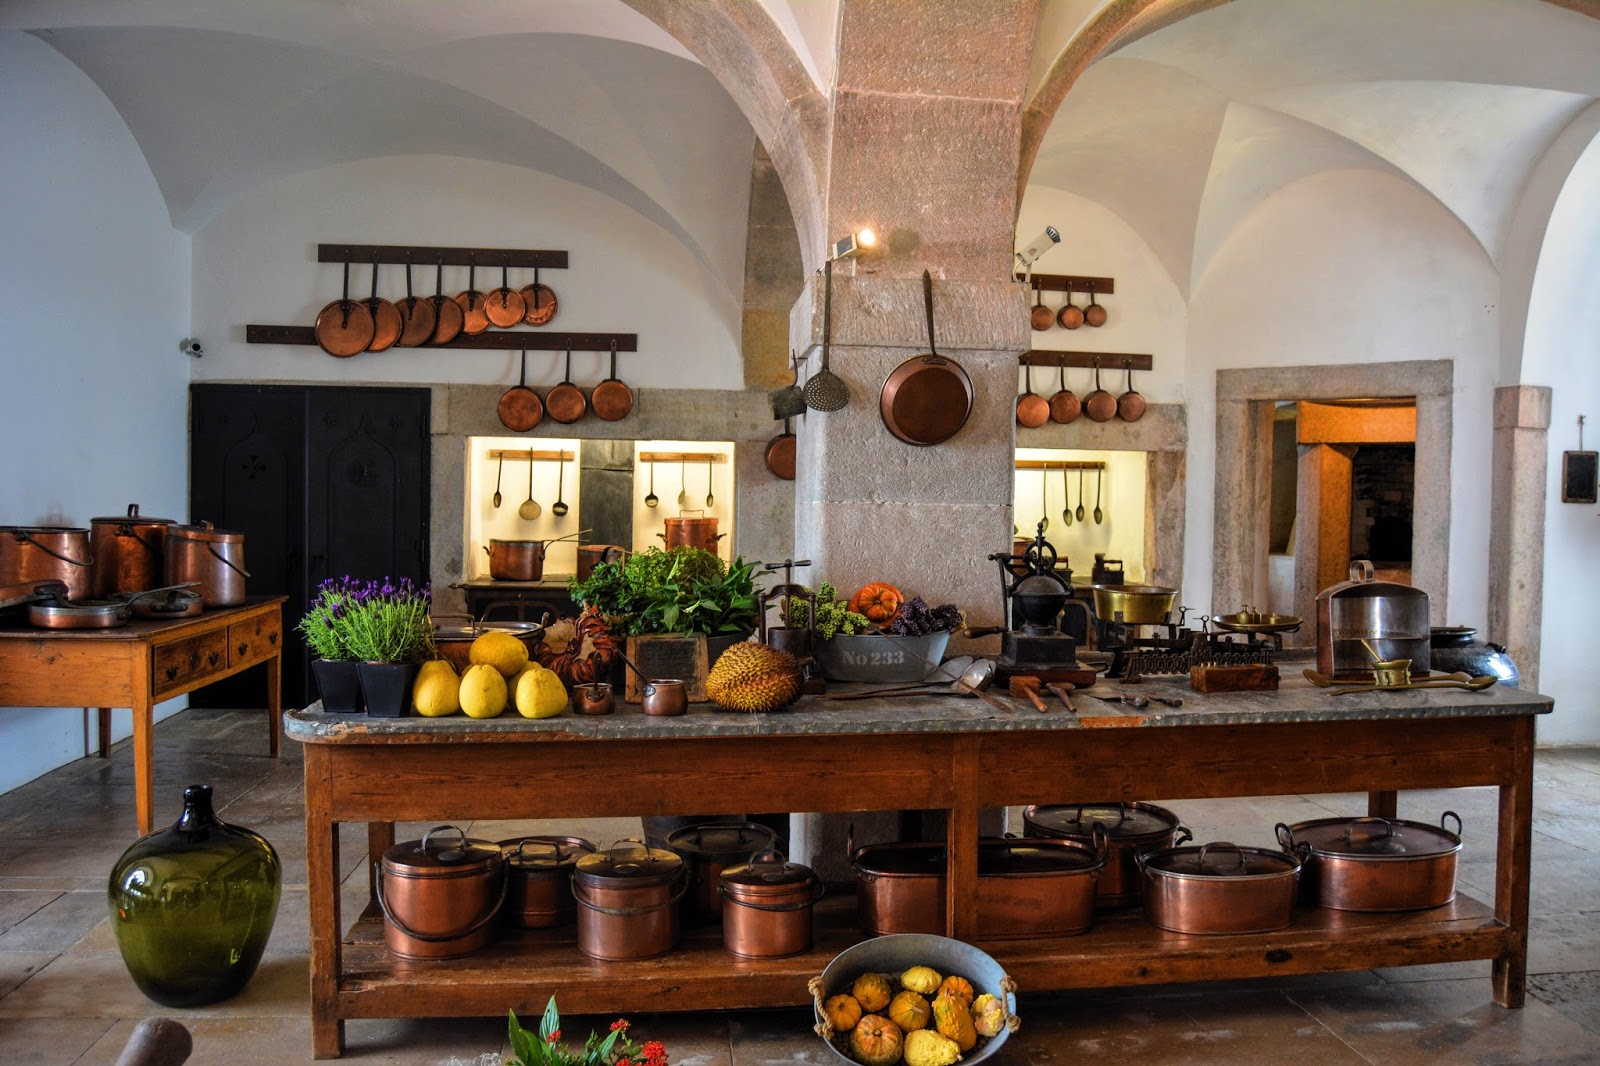 A photo of a massive kitchen inside the Pena palace in Portugal